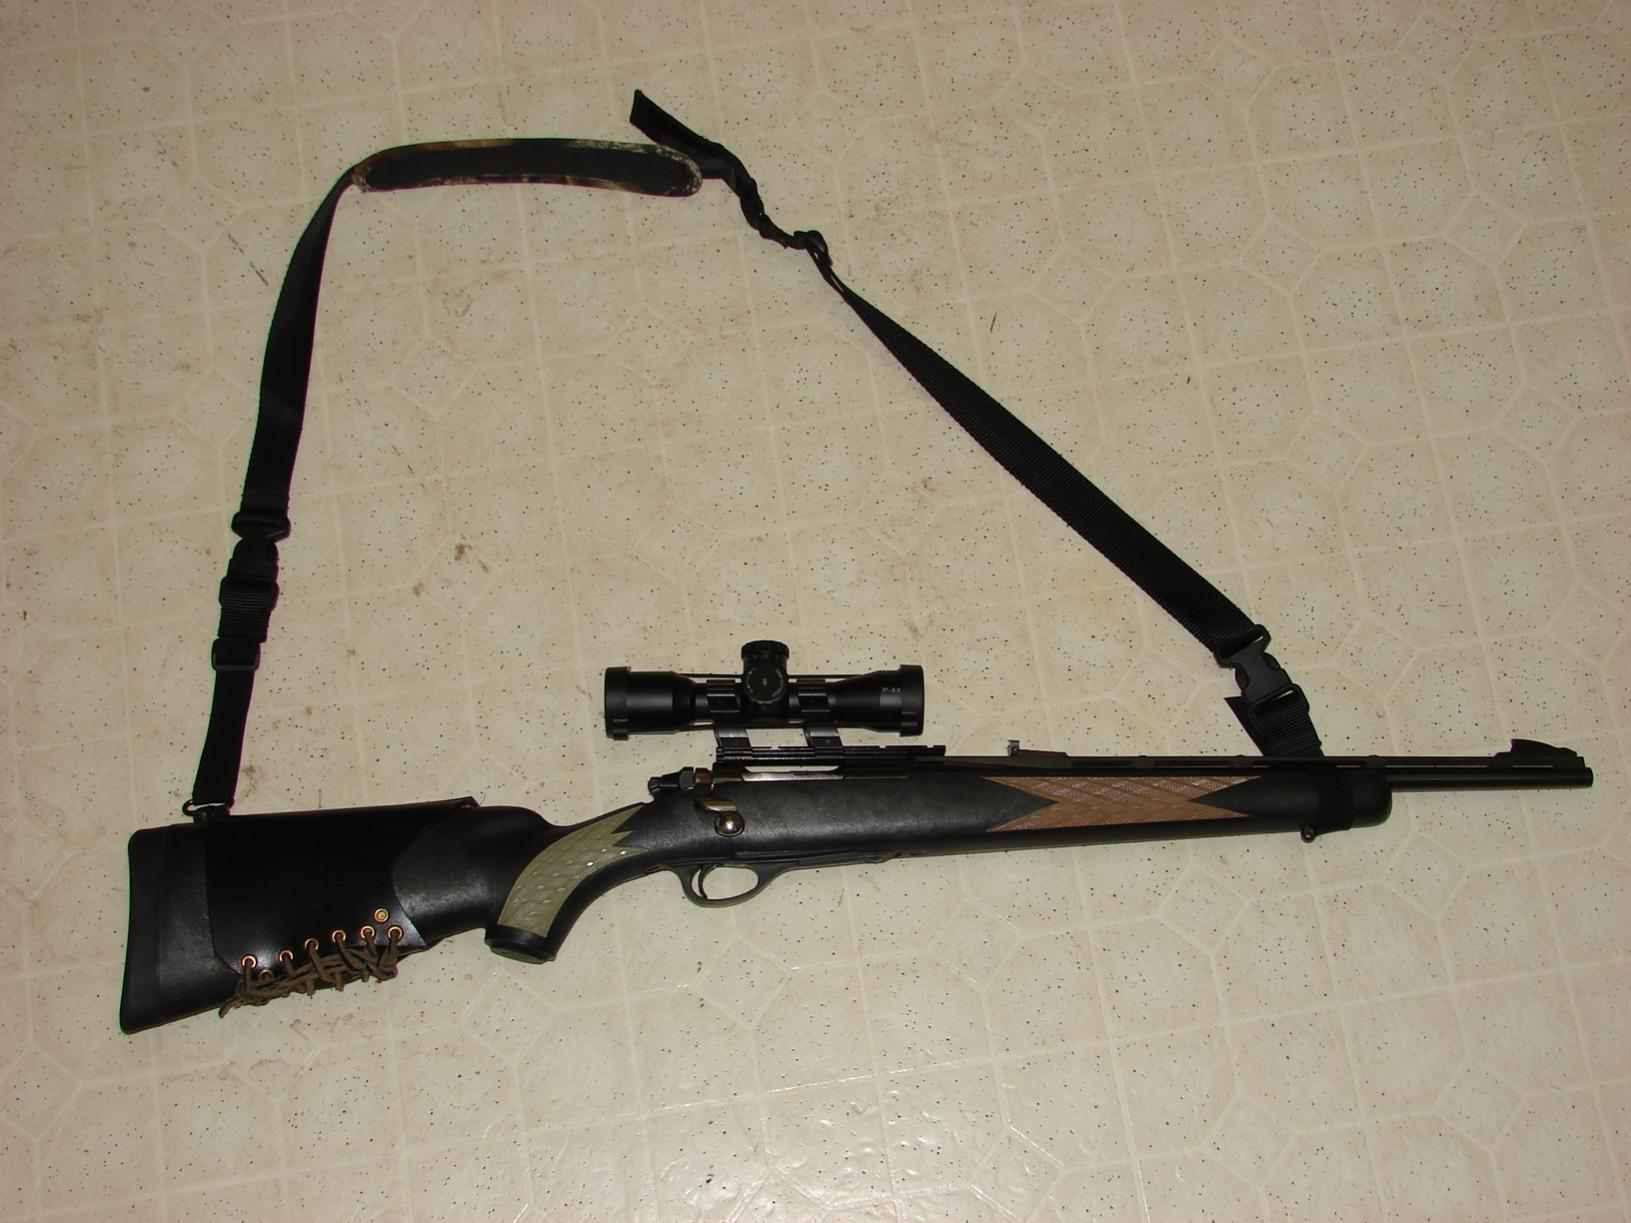 Ruger Gunsite Scout or Something Else? General Purpose Rifle